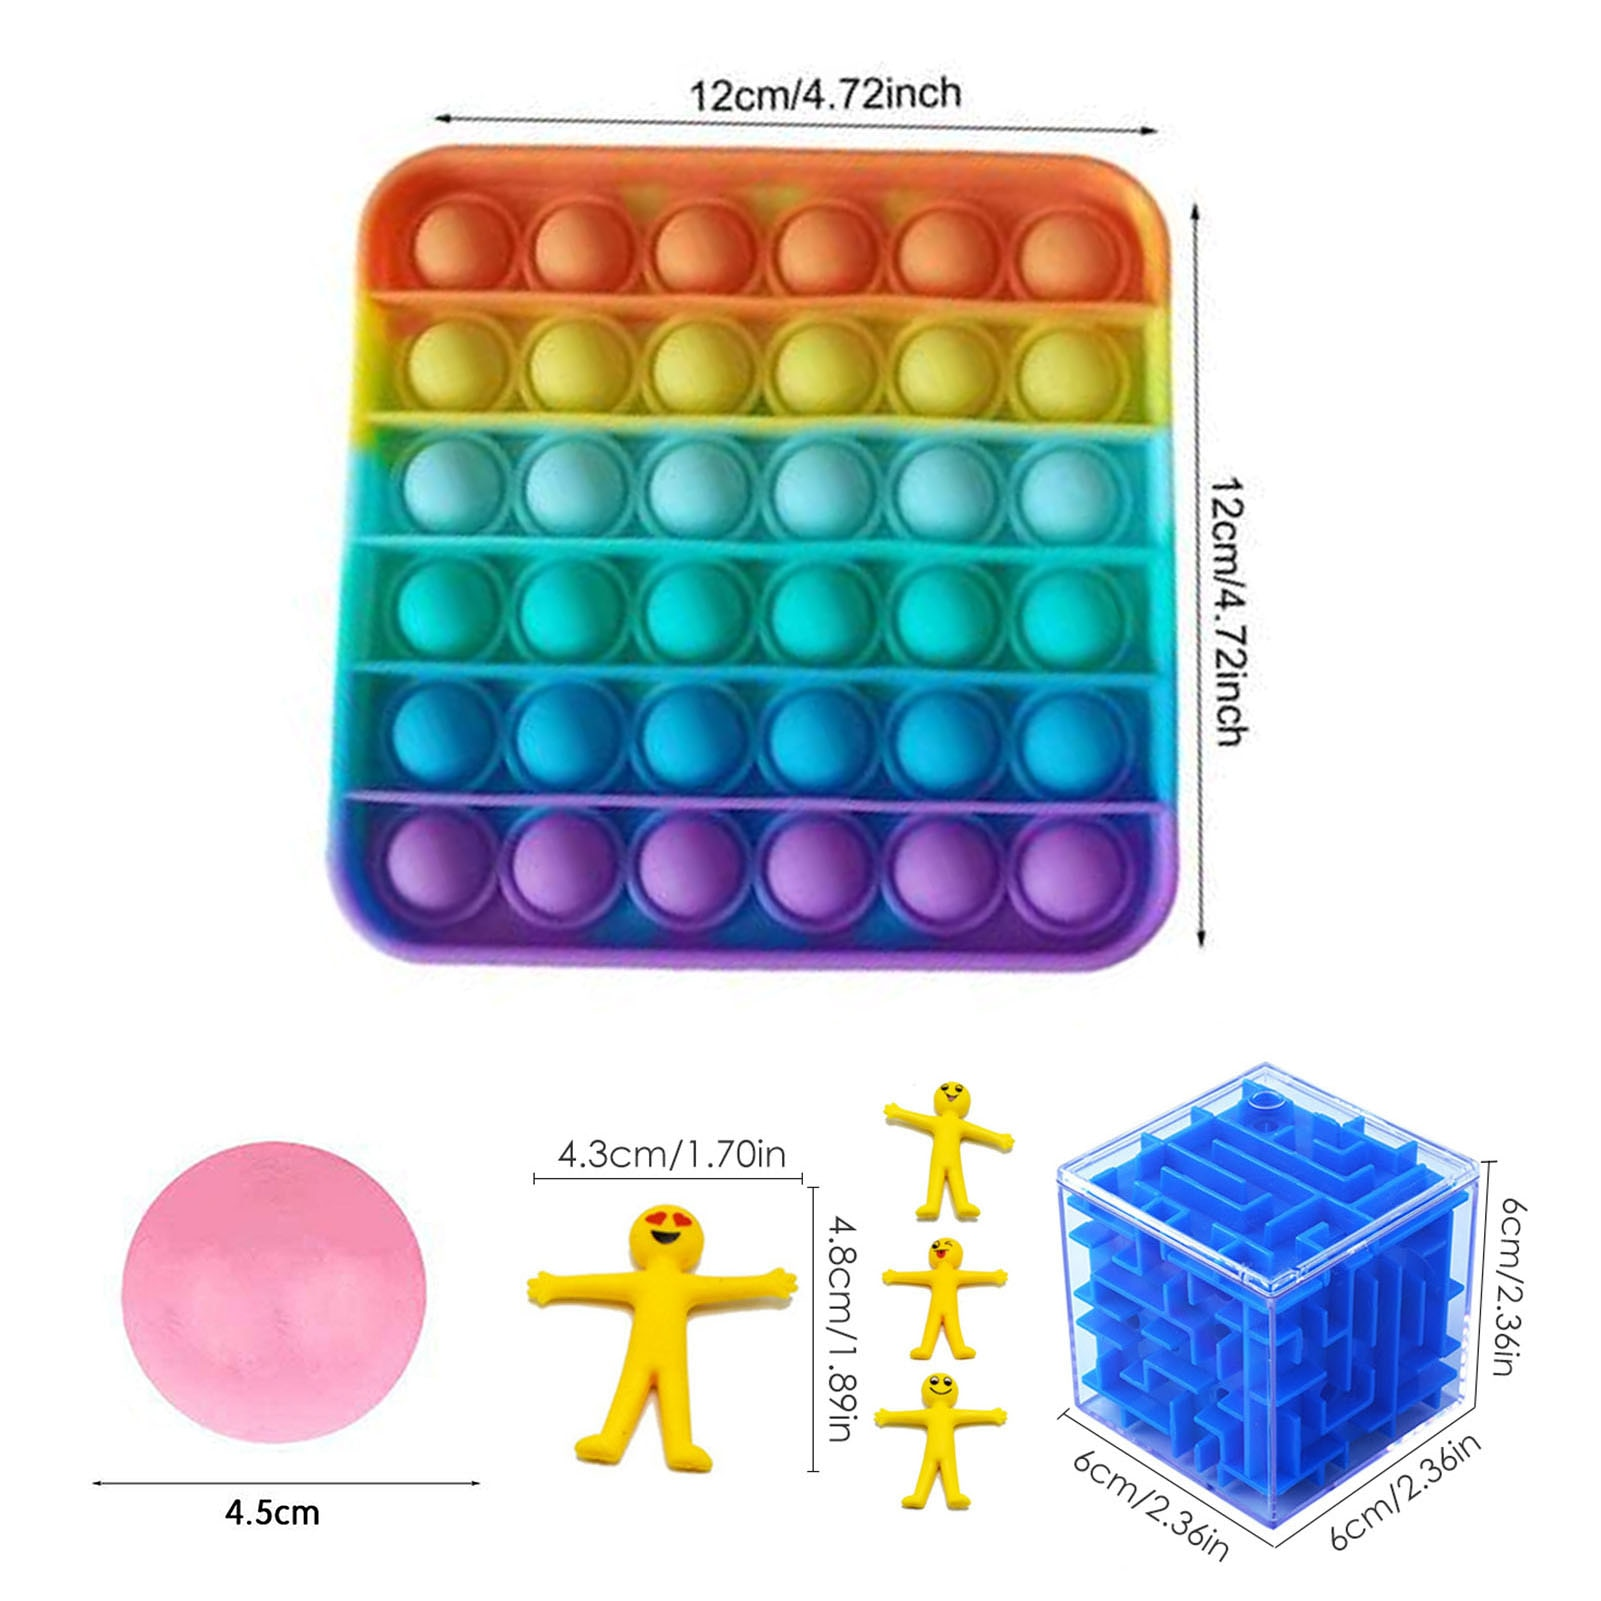 New Fidget Sensory Toy Set Stress Relief Toys Autism Anxiety Relief Stress Pop Bubble Funny Toy For Kids Adults enlarge